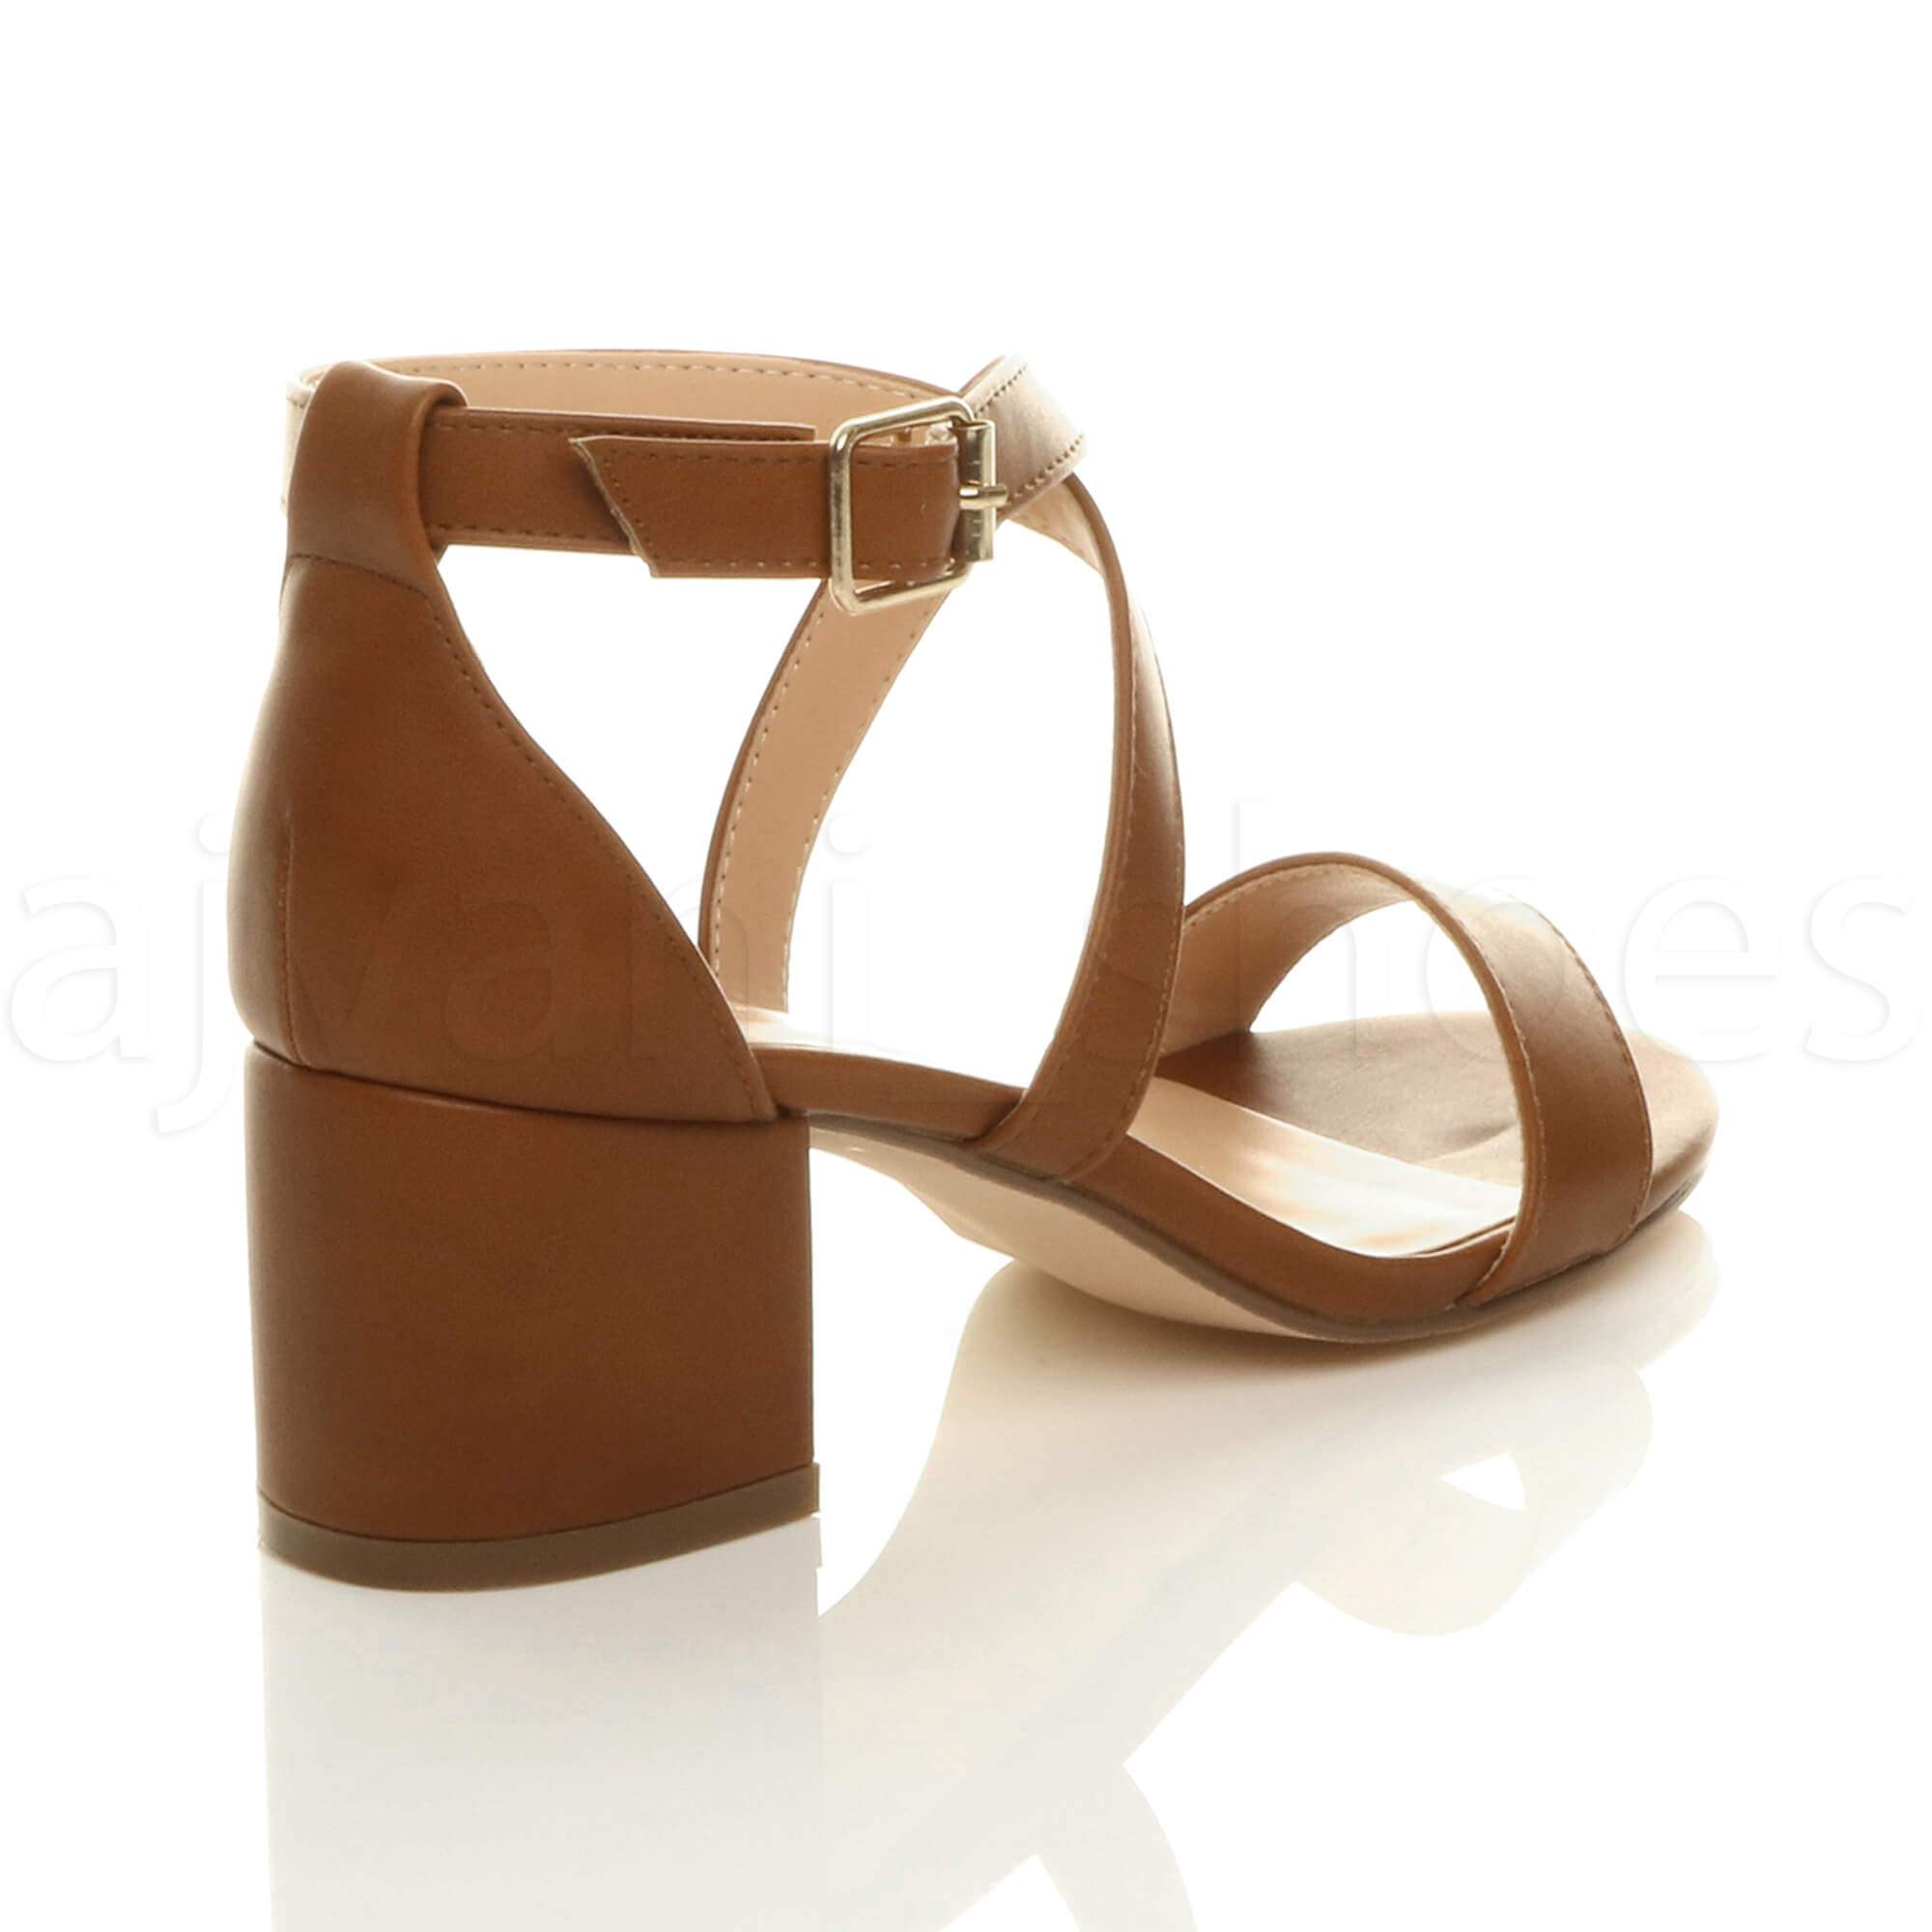 WOMENS-LADIES-MID-LOW-BLOCK-HEEL-CROSS-STRAPS-PARTY-STRAPPY-SANDALS-SHOES-SIZE thumbnail 92